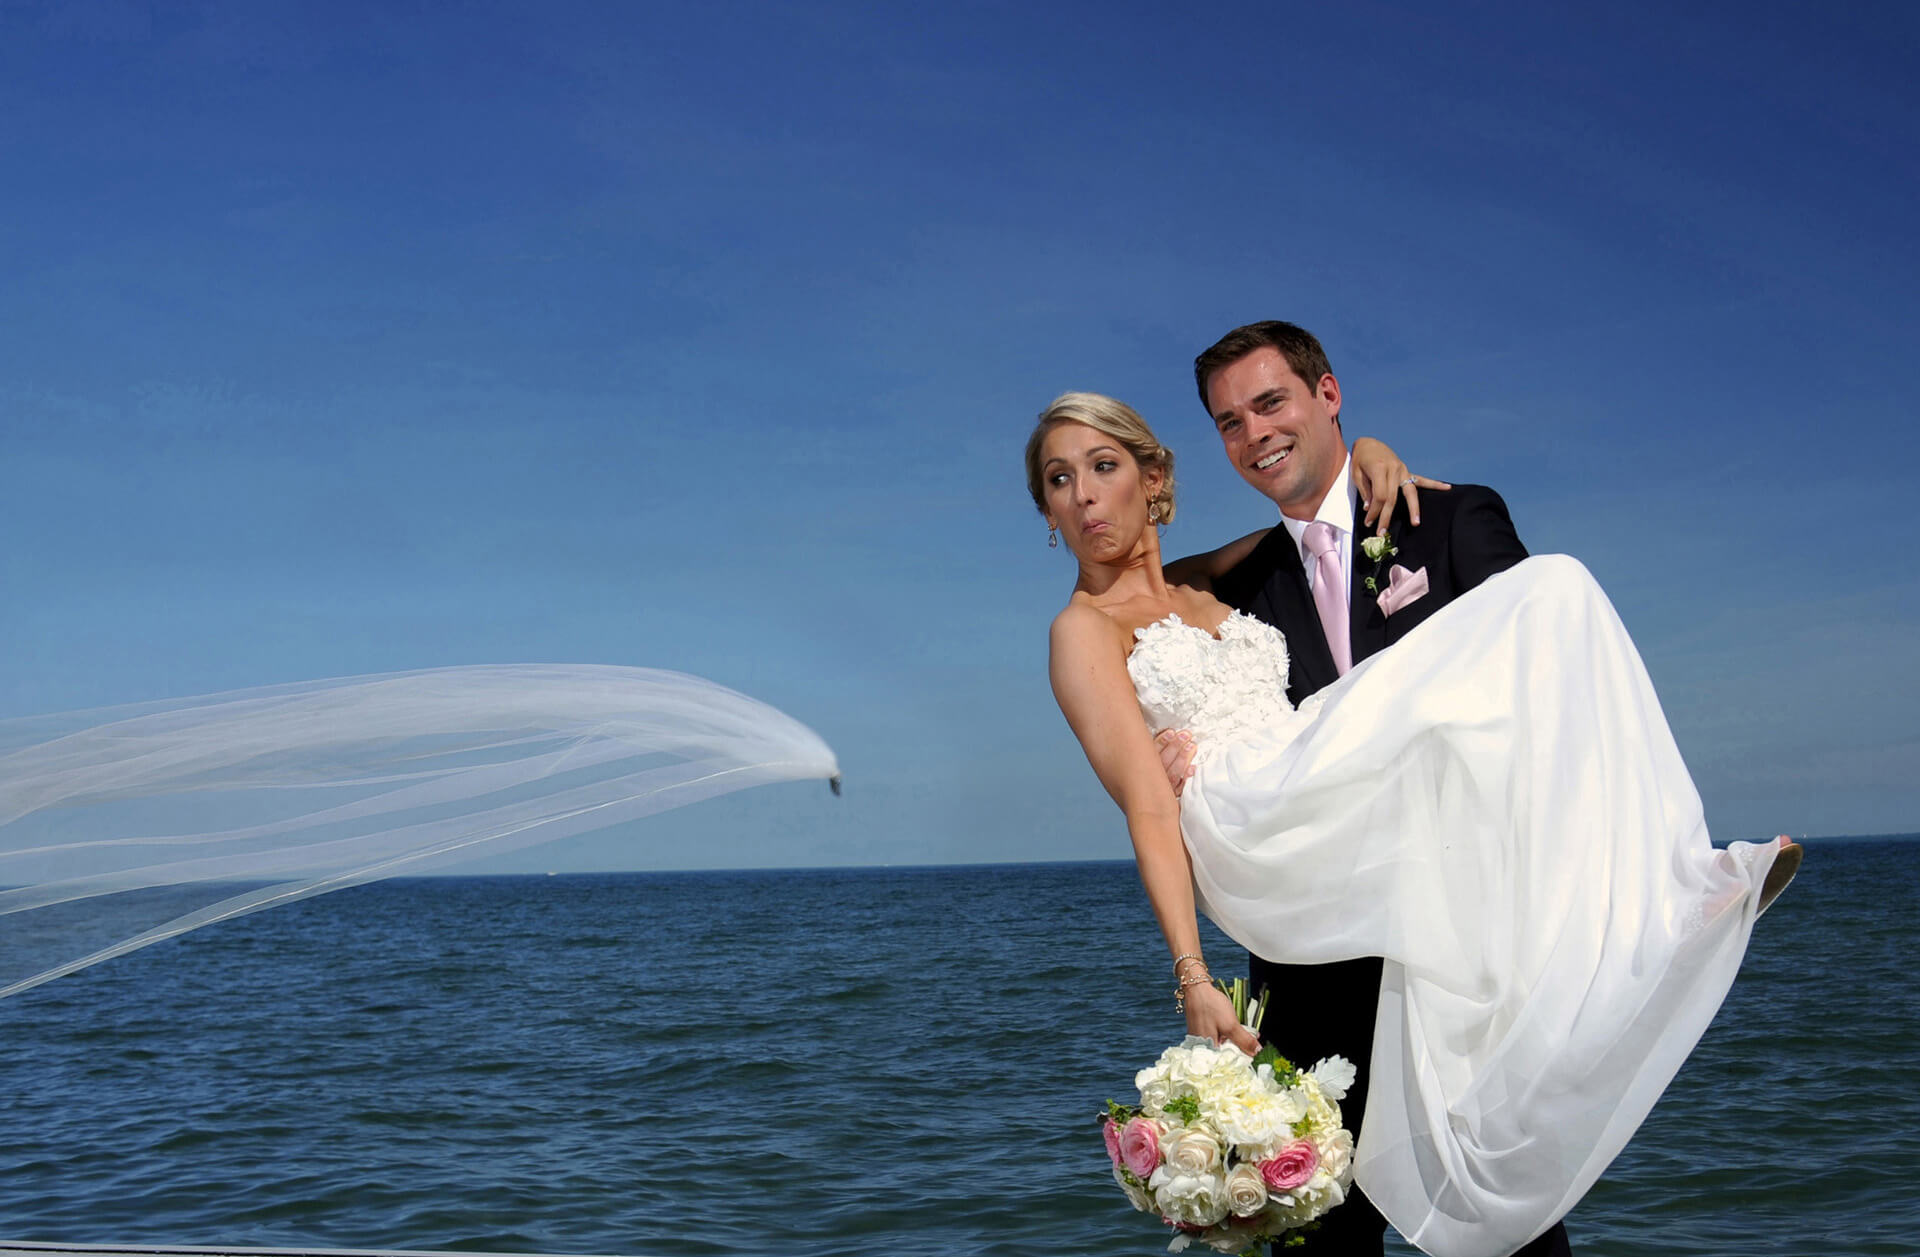 A beautiful Grosse Pointe Michigan wedding couple react as the bride's veil pulls away from her and heads to the water in Grosse Pointe Michigan after their wedding.